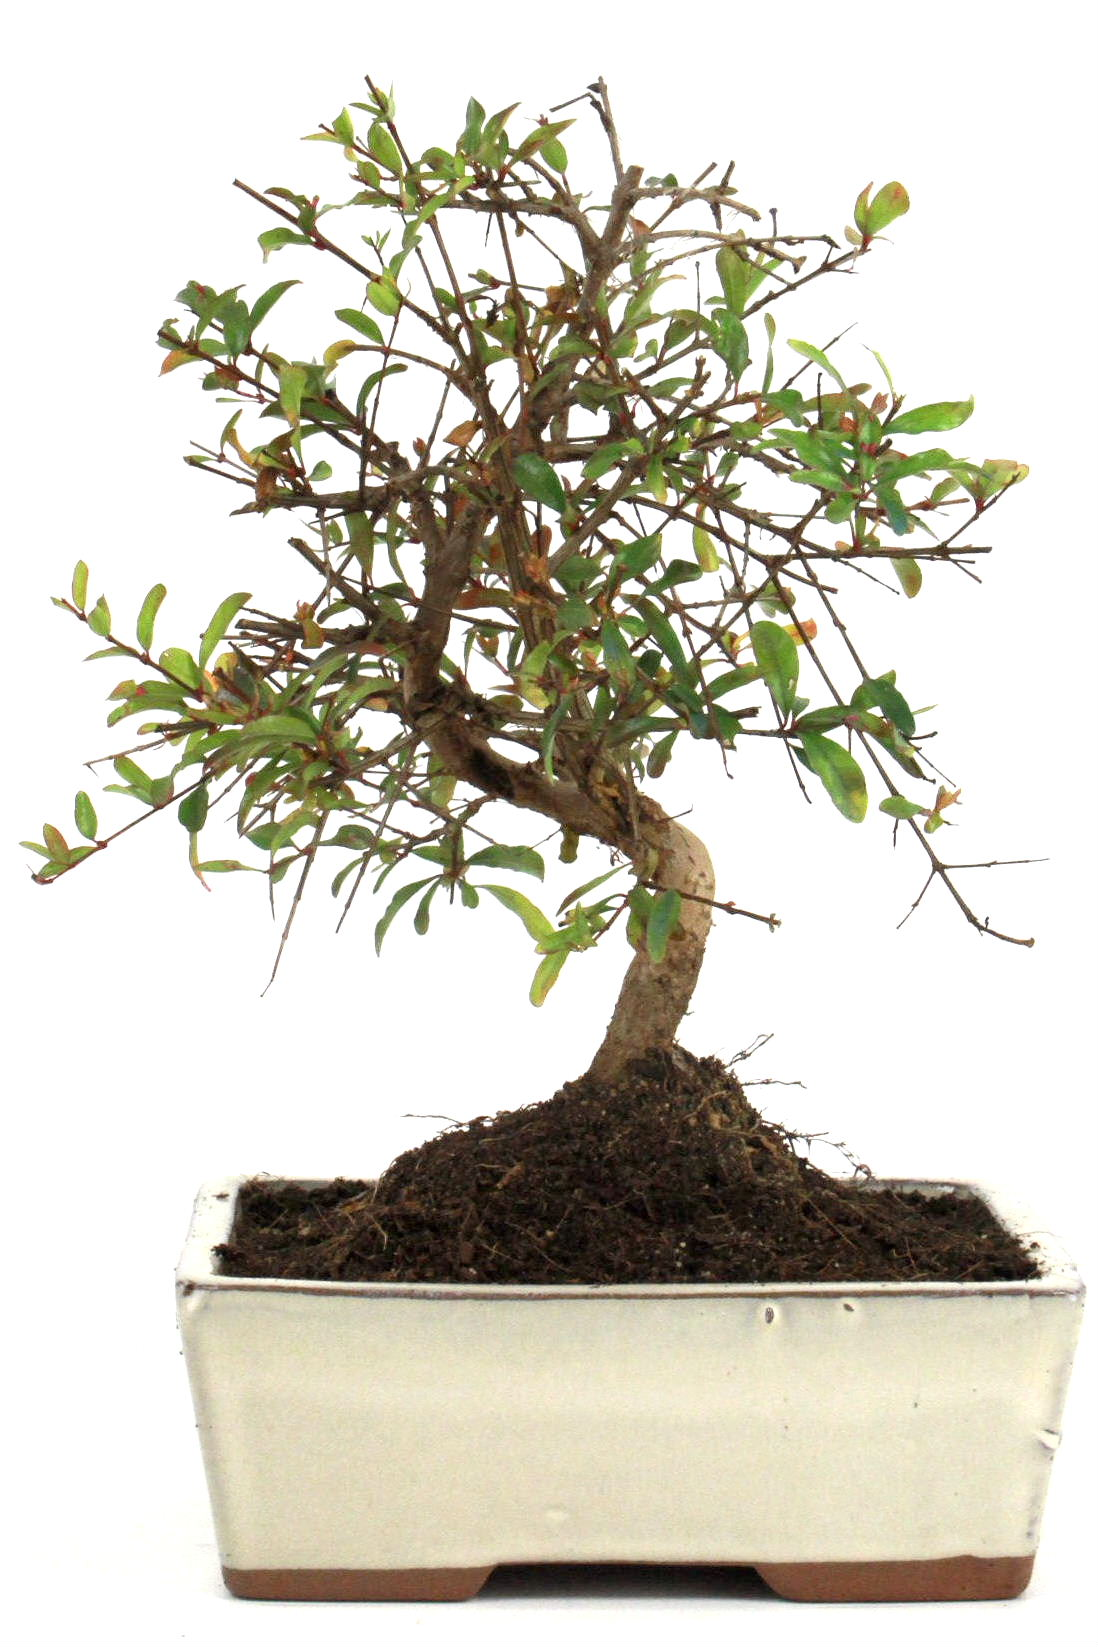 Granatapfel bonsai 25 30 cm 1610 bei oyaki bonsai kaufen for Bonsai onlineshop